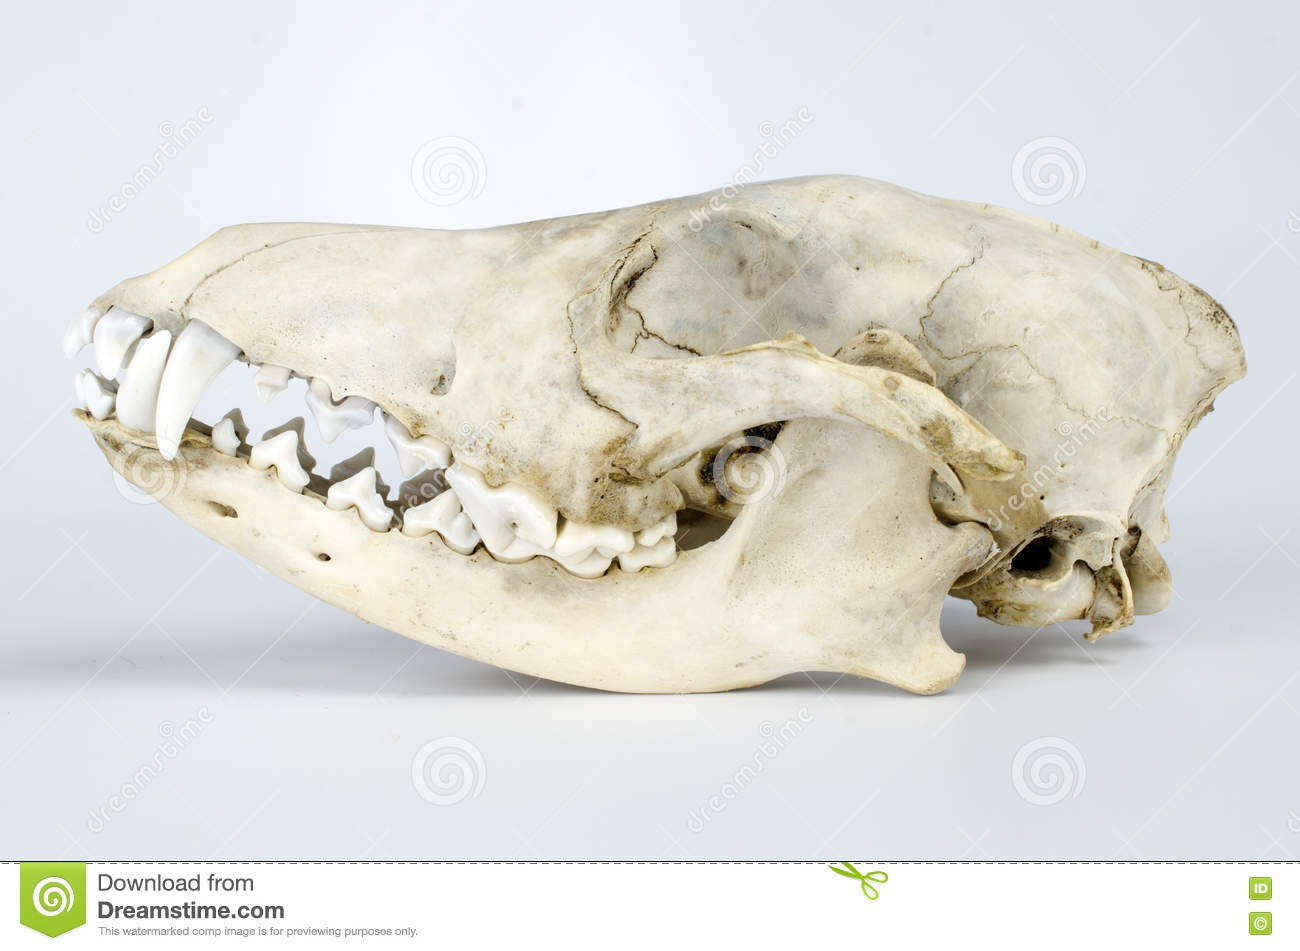 Coyote Skull Taxidermy stock image  Image of arch, coyote